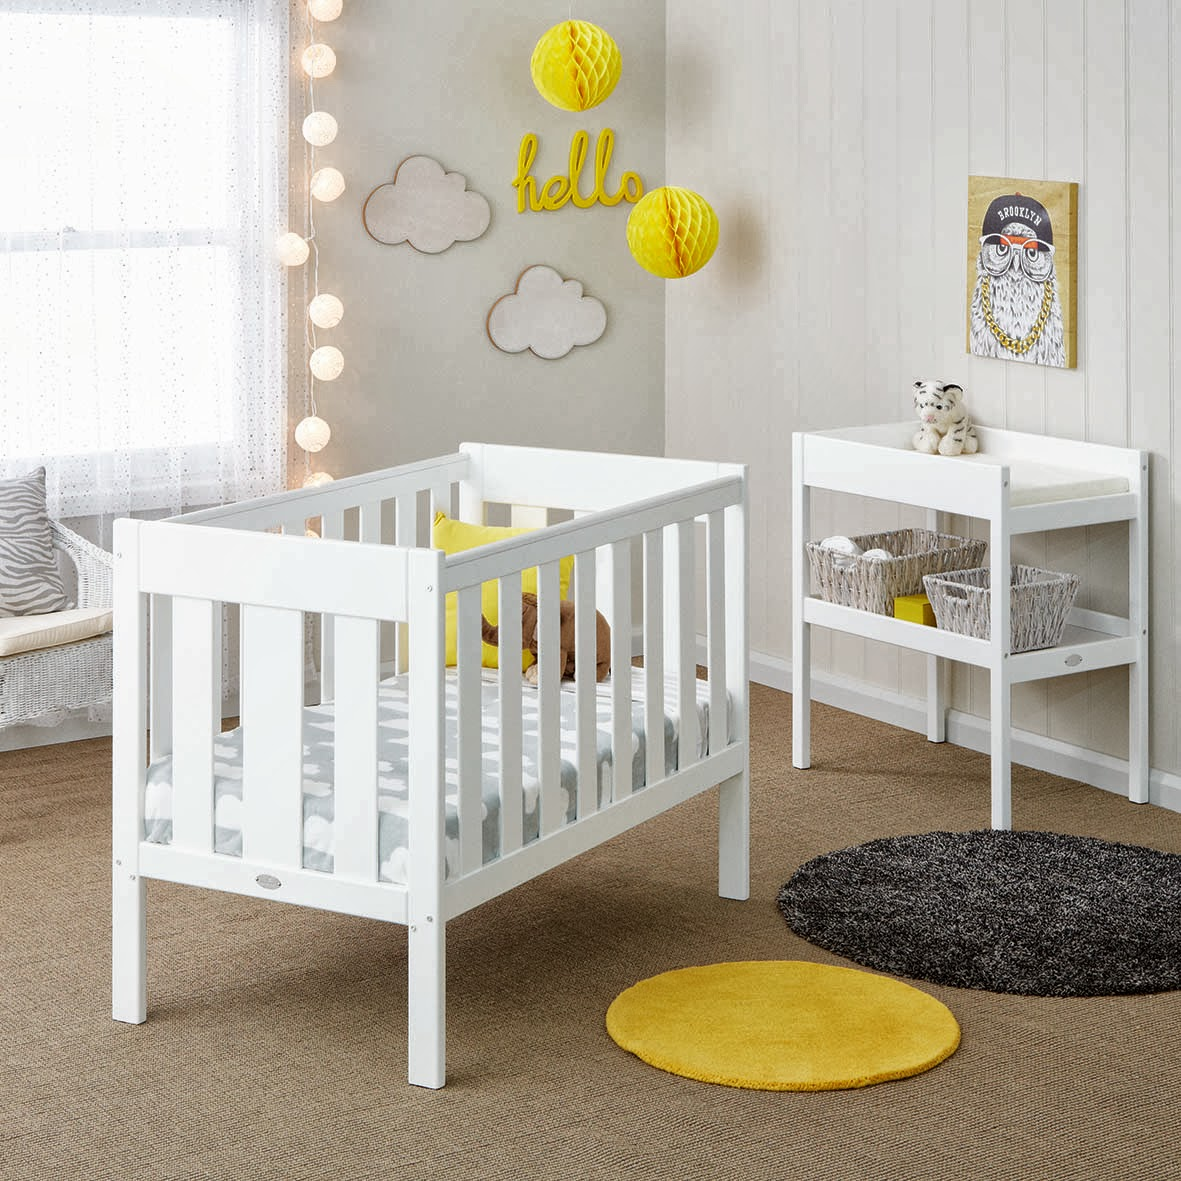 Cot Bedding Australia White Nursery Furniture Sets Australia Thenurseries